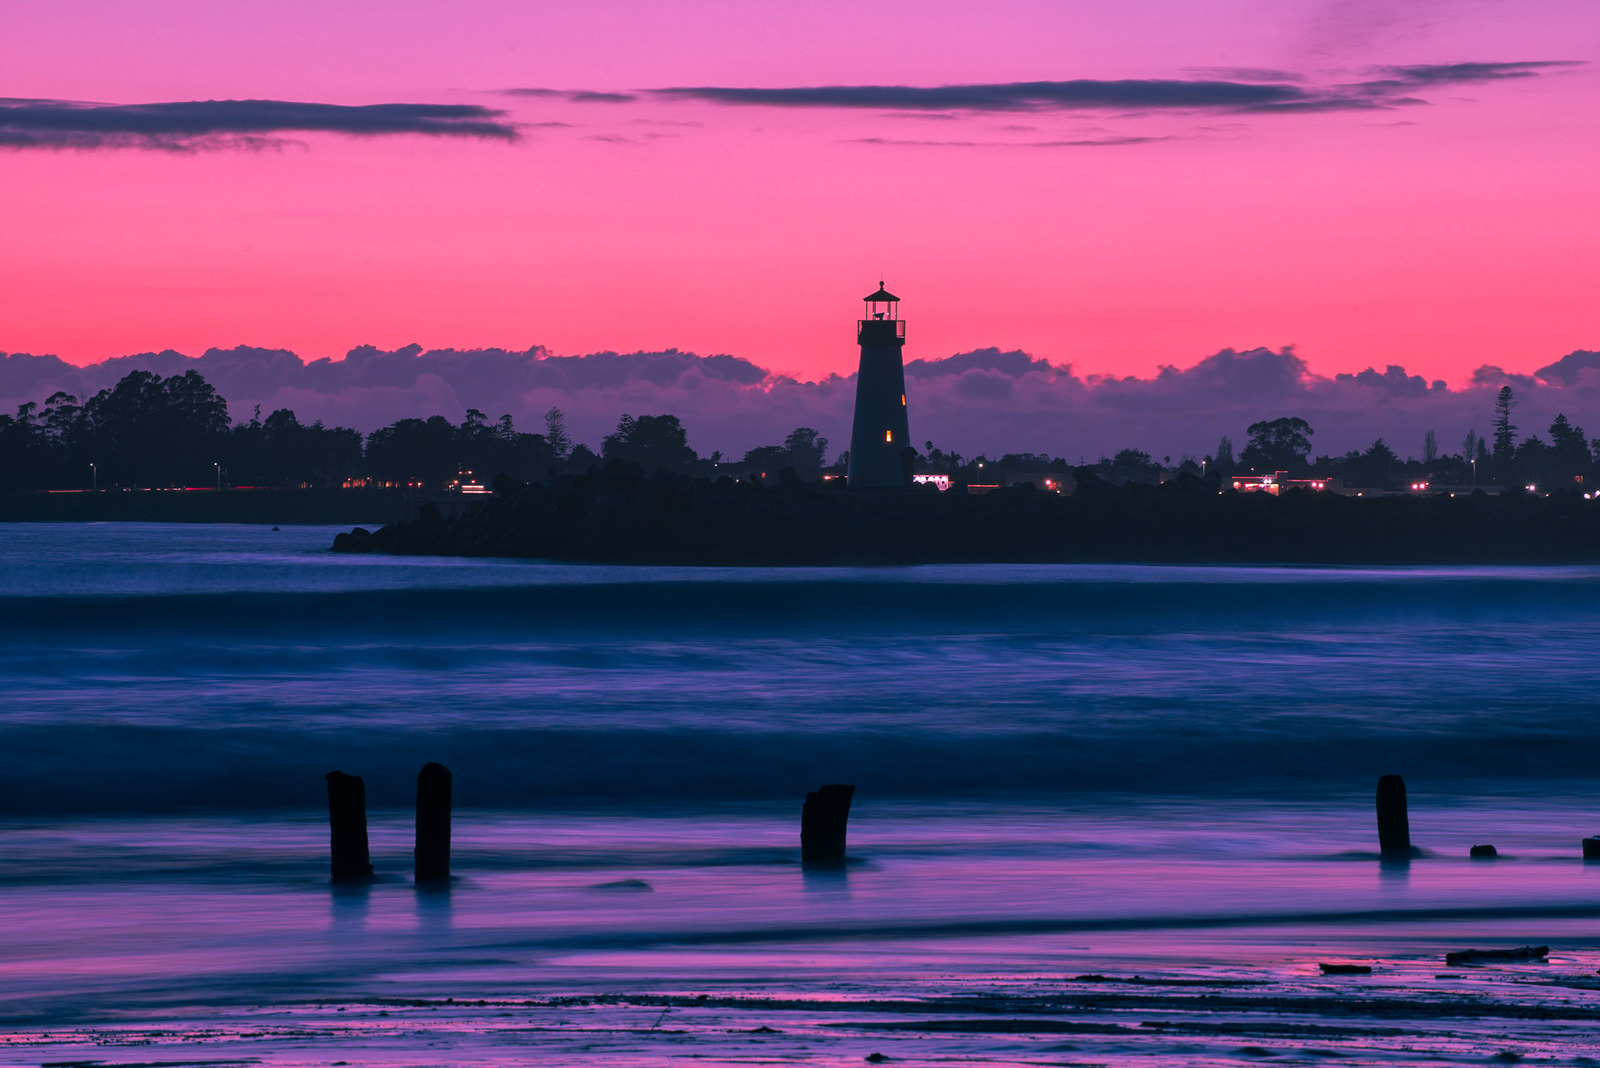 Lighthouse during Night - Photos by Canva